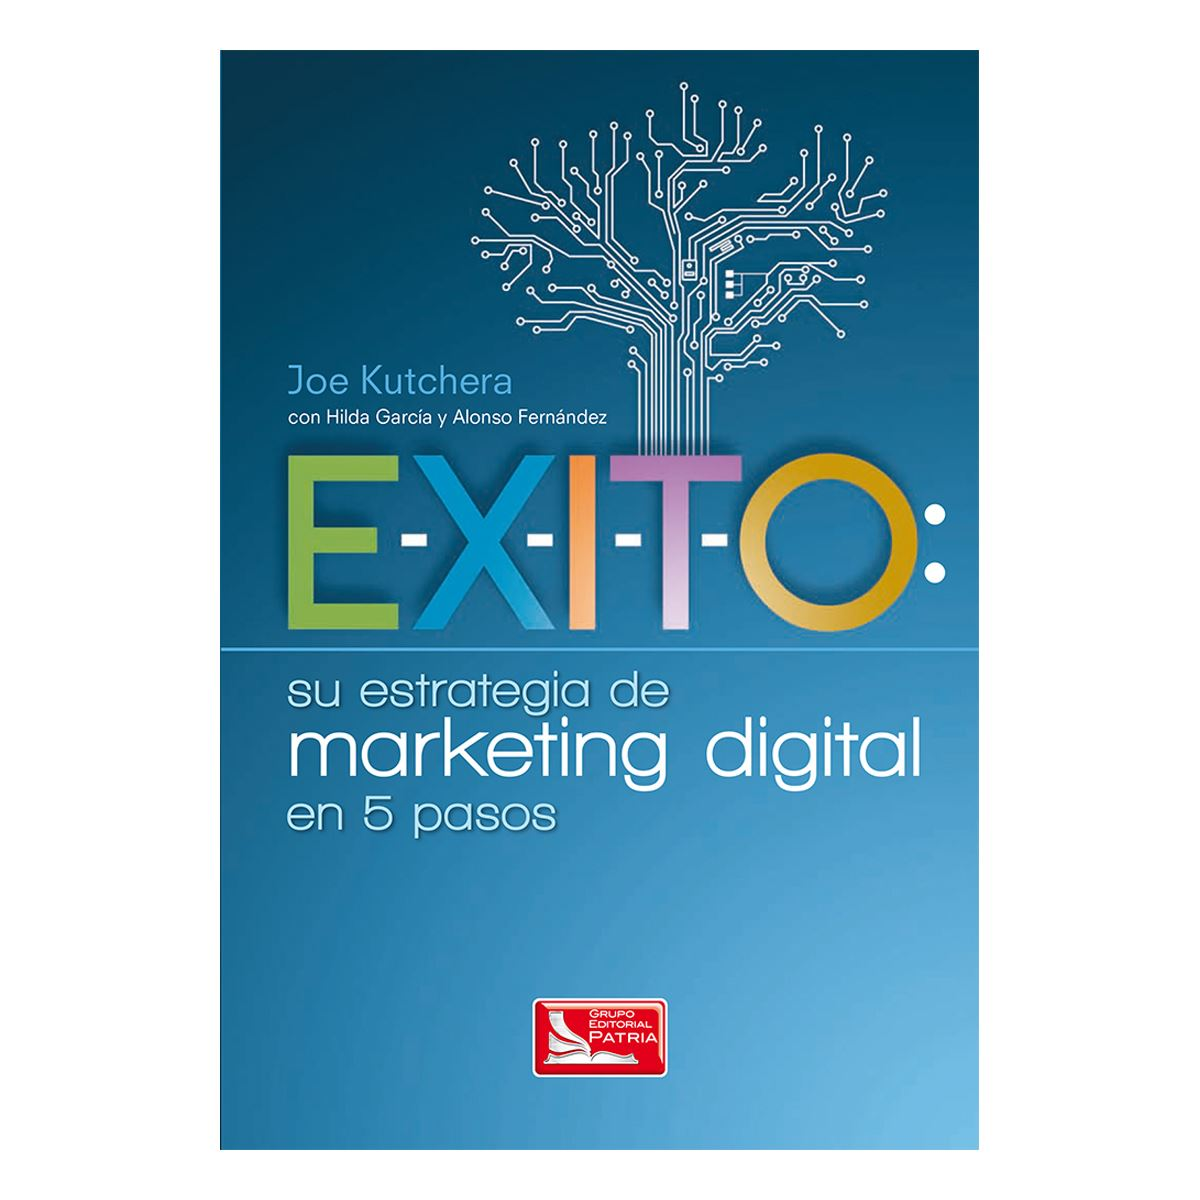 E-x-i-t-o su estrategia de marketing digital Libro - Sanborns